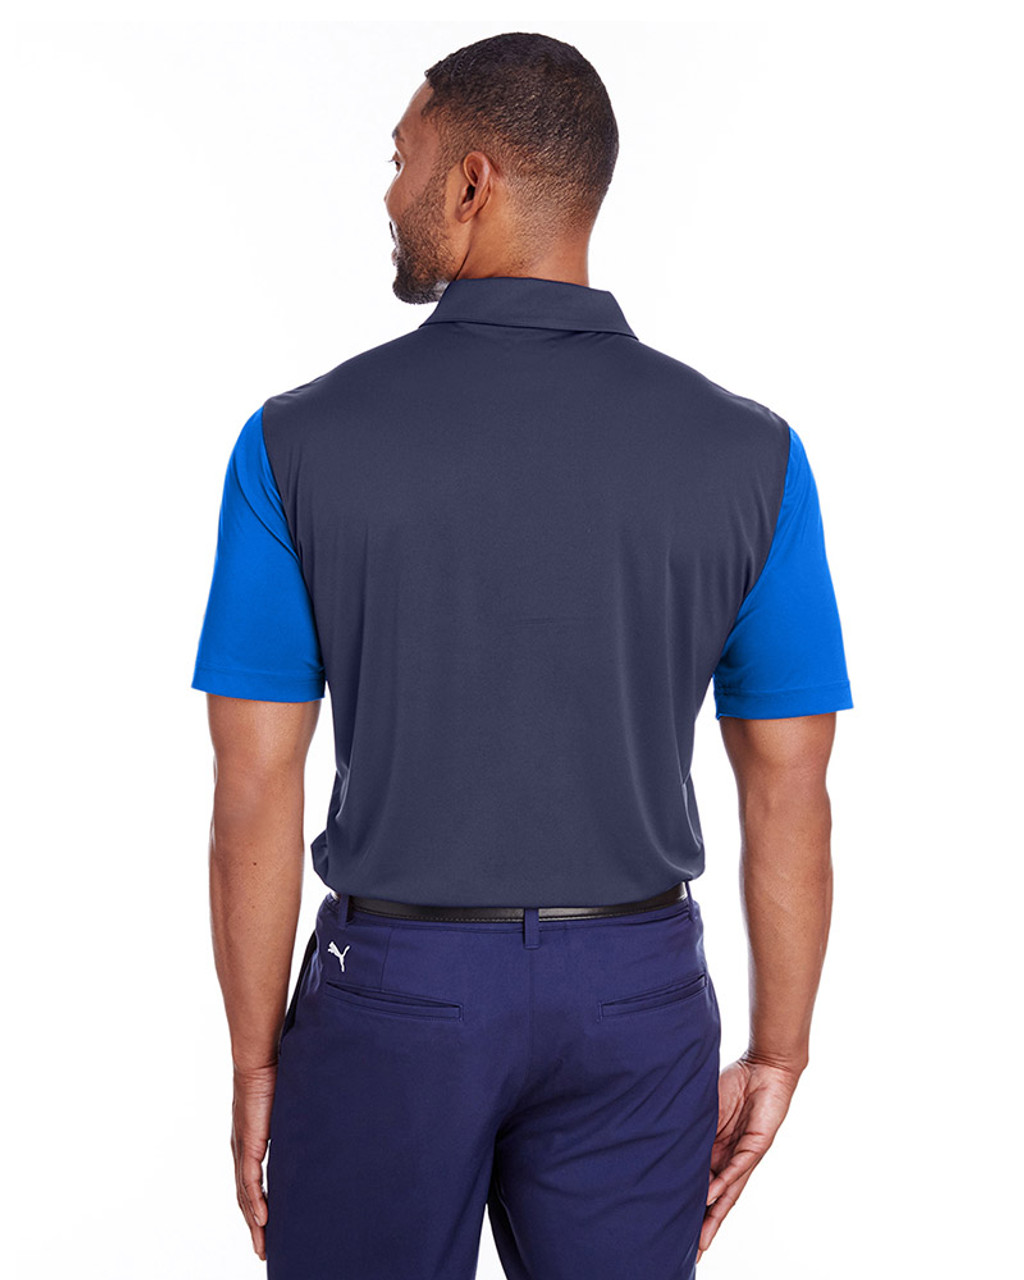 Lapis Blue/Peacoat - back, 596805 Puma Golf Men's Bonded Colorblock Polo | Blankclothing.ca